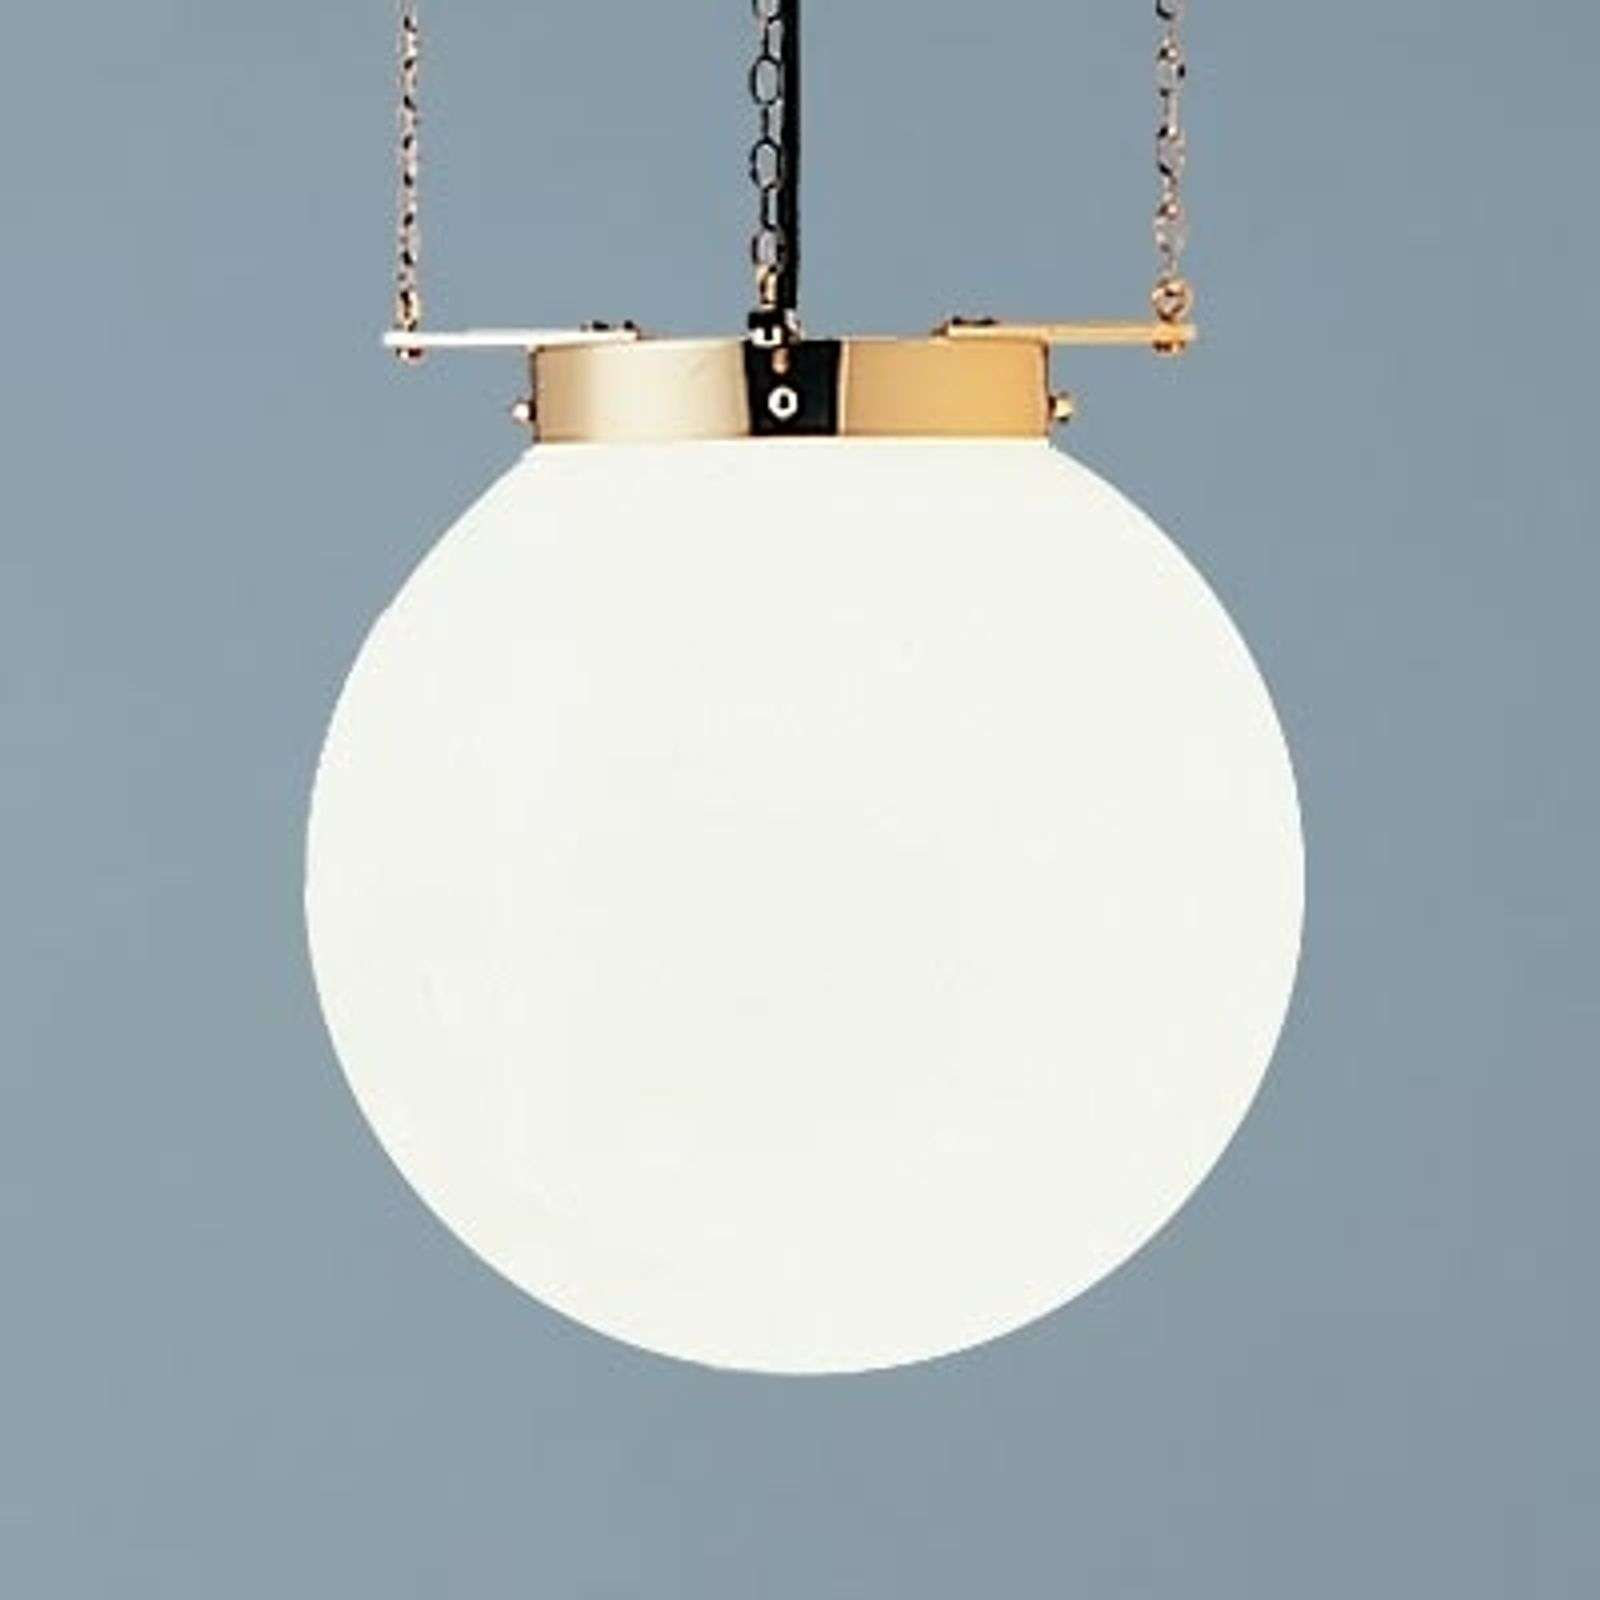 Suspension laiton style Bauhaus 30 cm